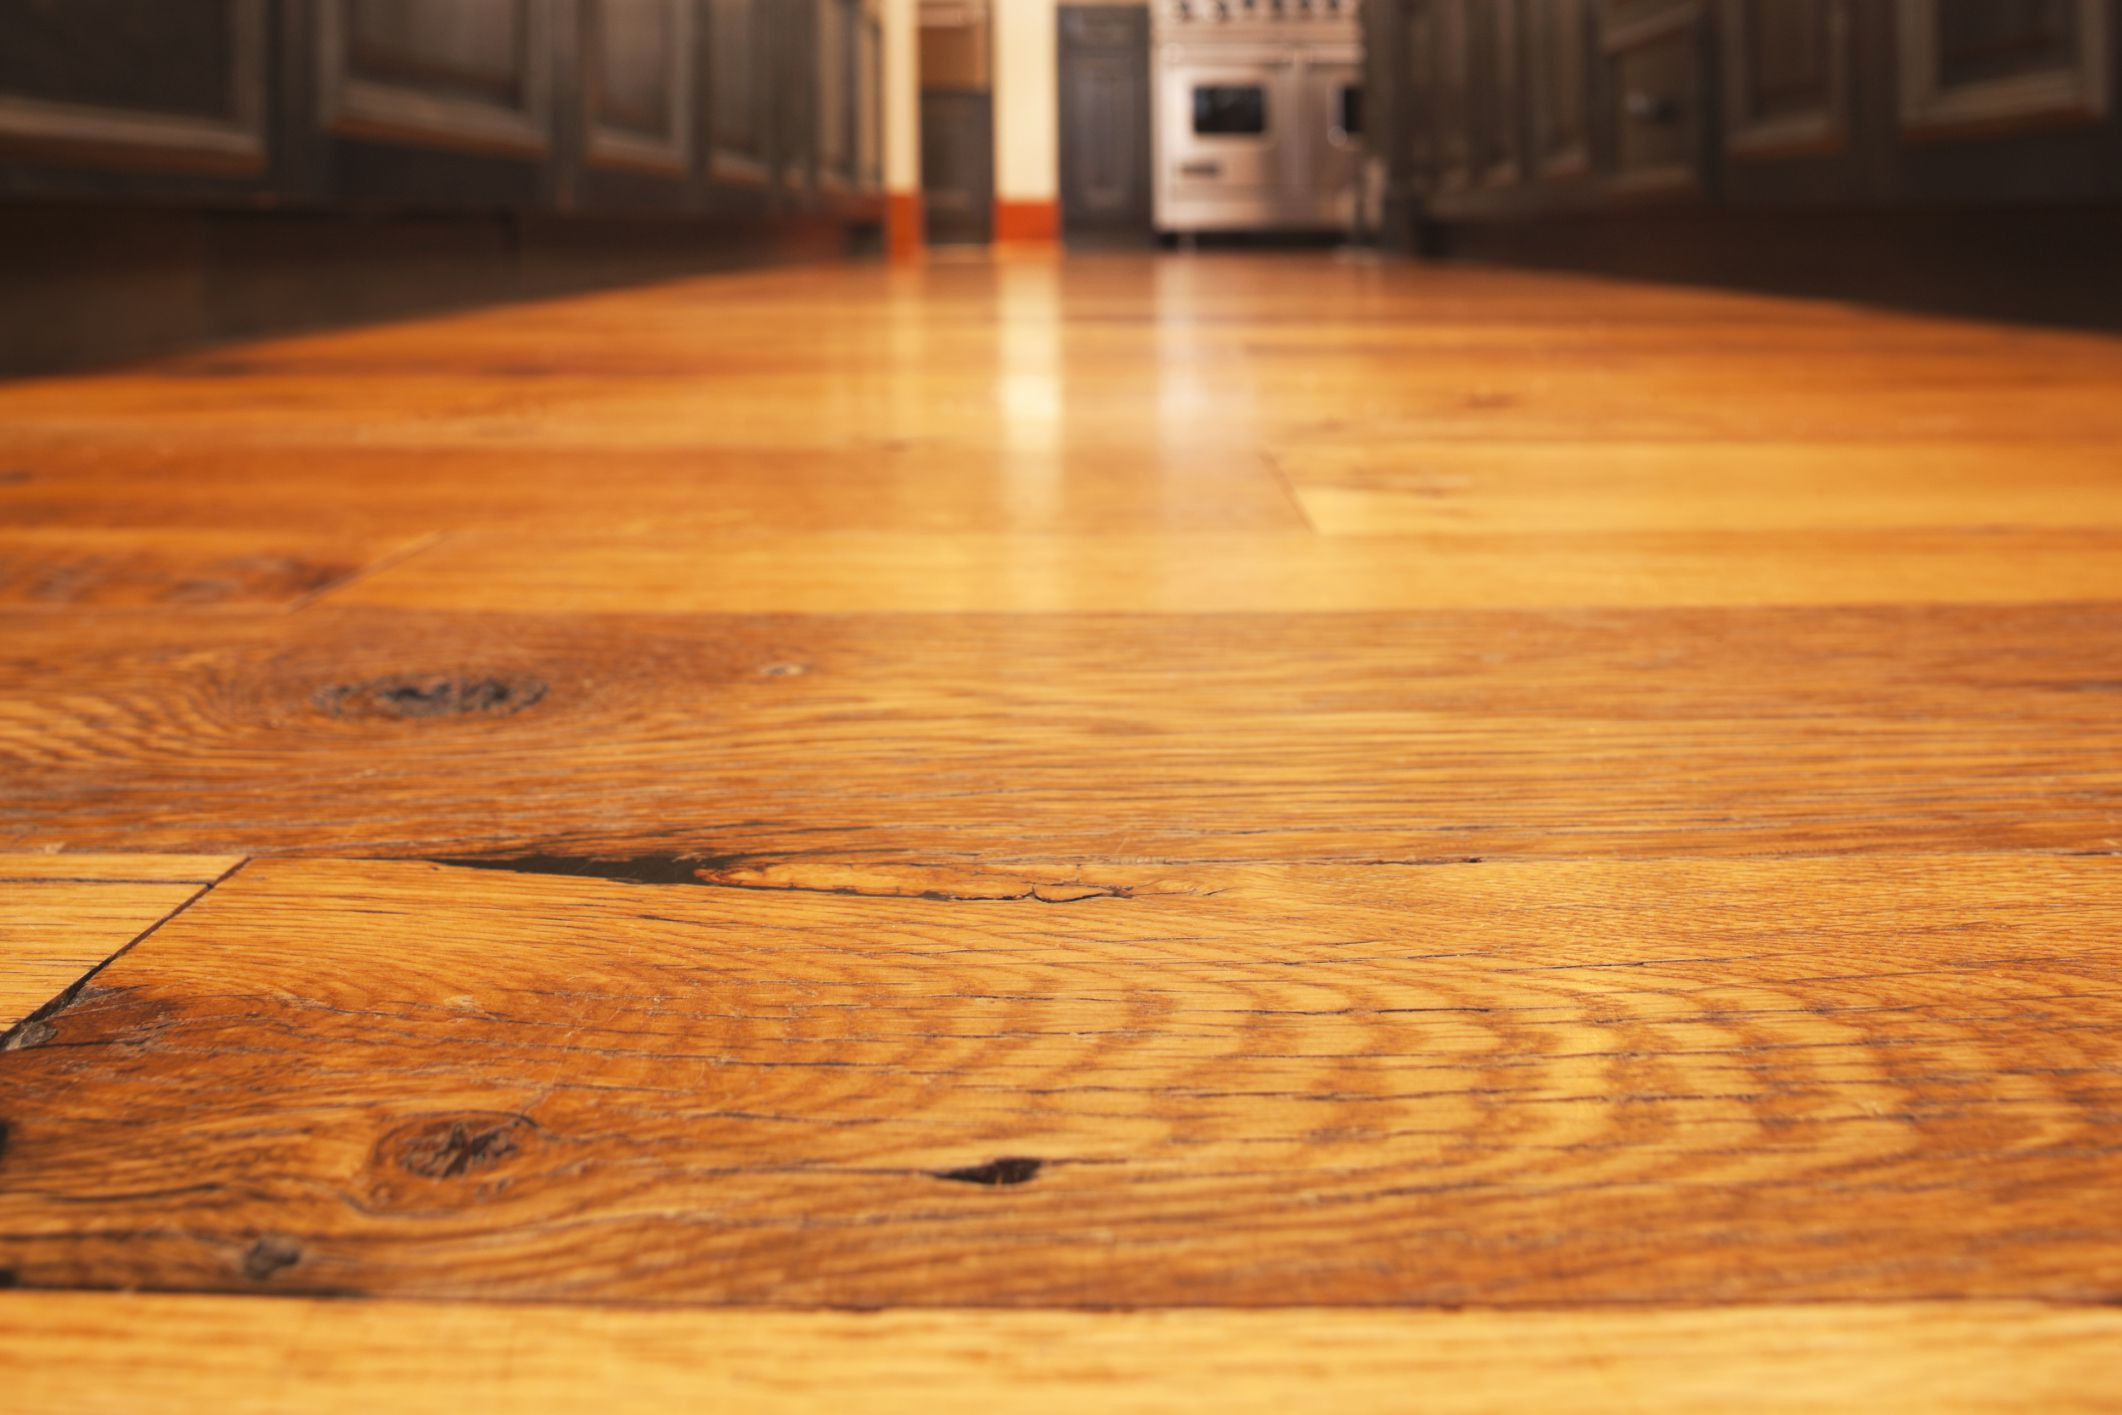 filling large gaps in hardwood floors of why a microbevel is on your flooring intended for wood floor closeup microbevel 56a4a13f5f9b58b7d0d7e5f4